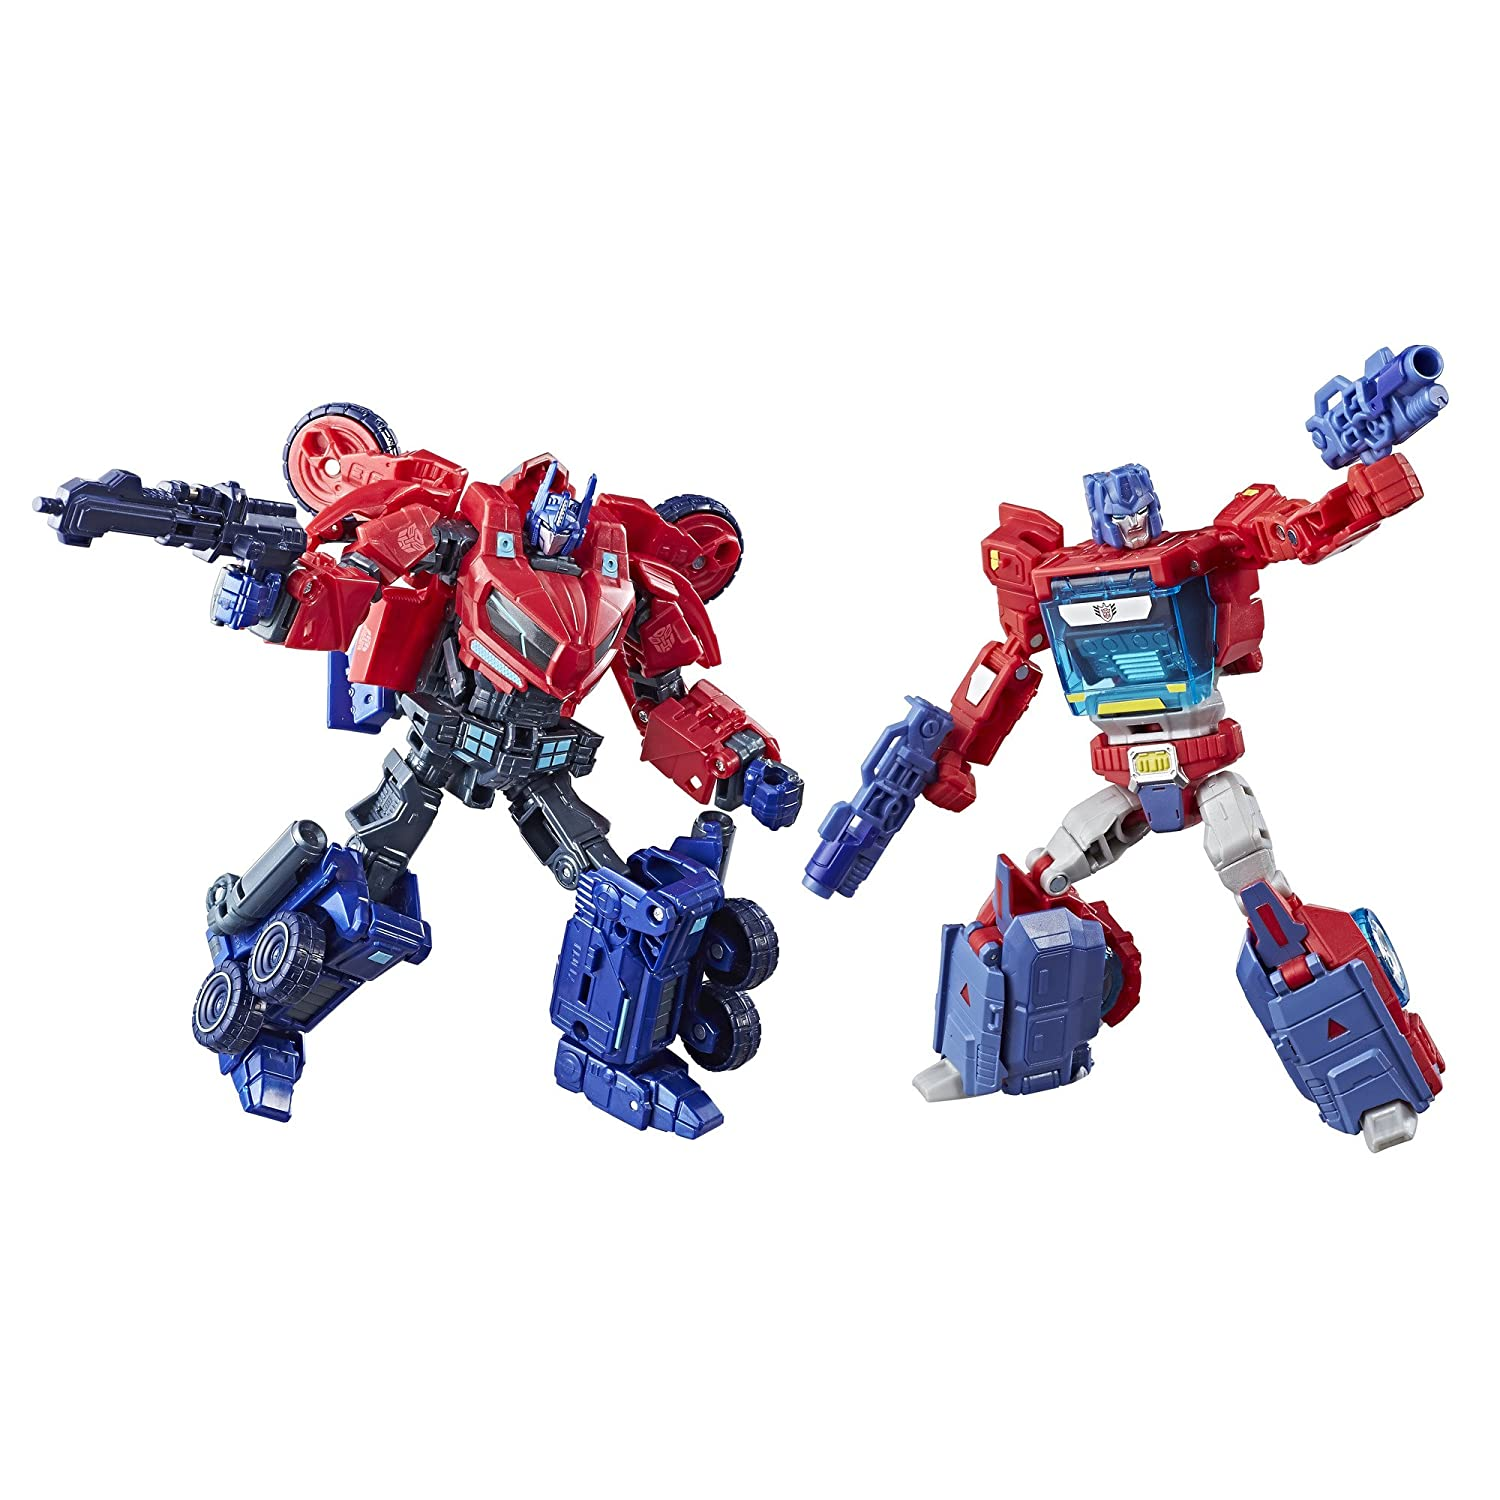 Transformers Deluxe Class Optimus Prime Autobot Legacy 2-Pack (Amazon Exclusive) Hasbro C2027